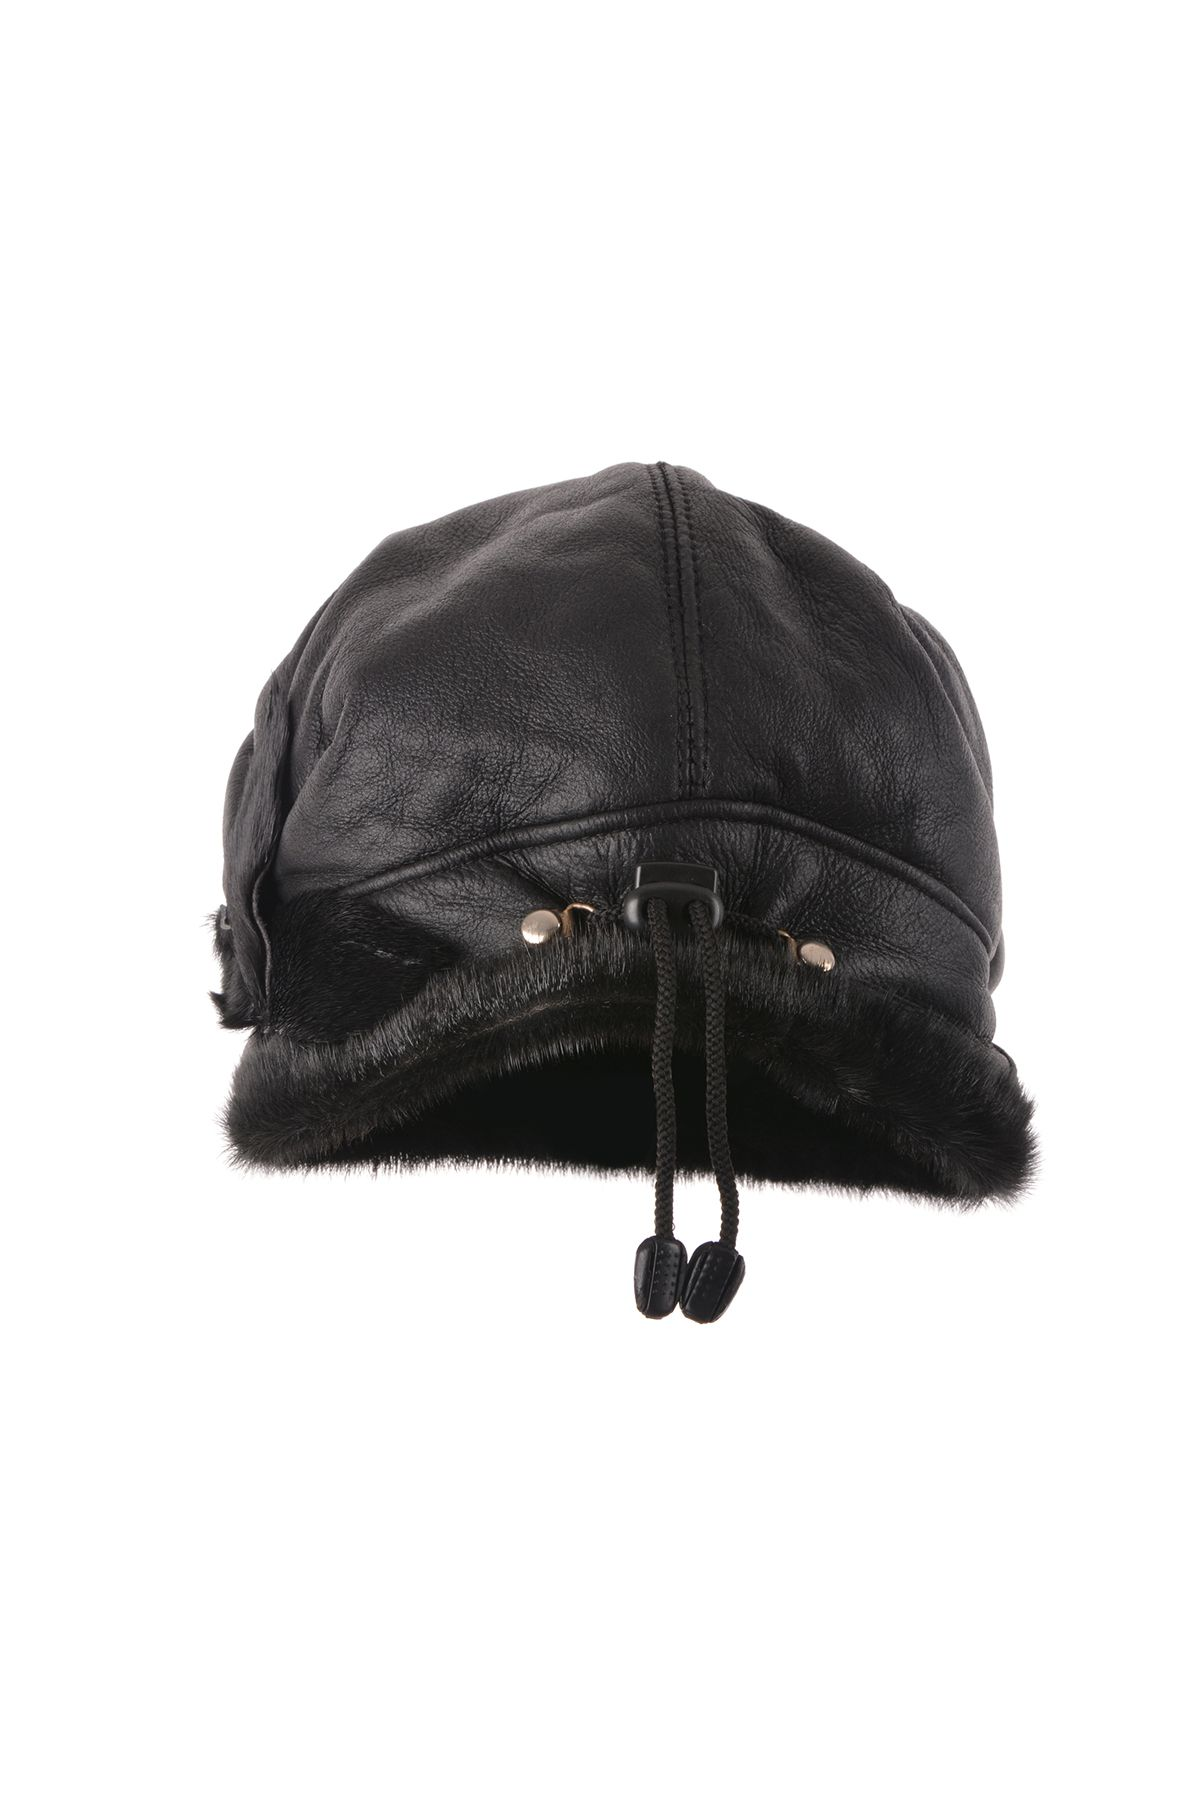 Pegia Pilot Ear-Flaps Hat From Genuine Leather And Fur With Flower-Shaped Fur Addition Black